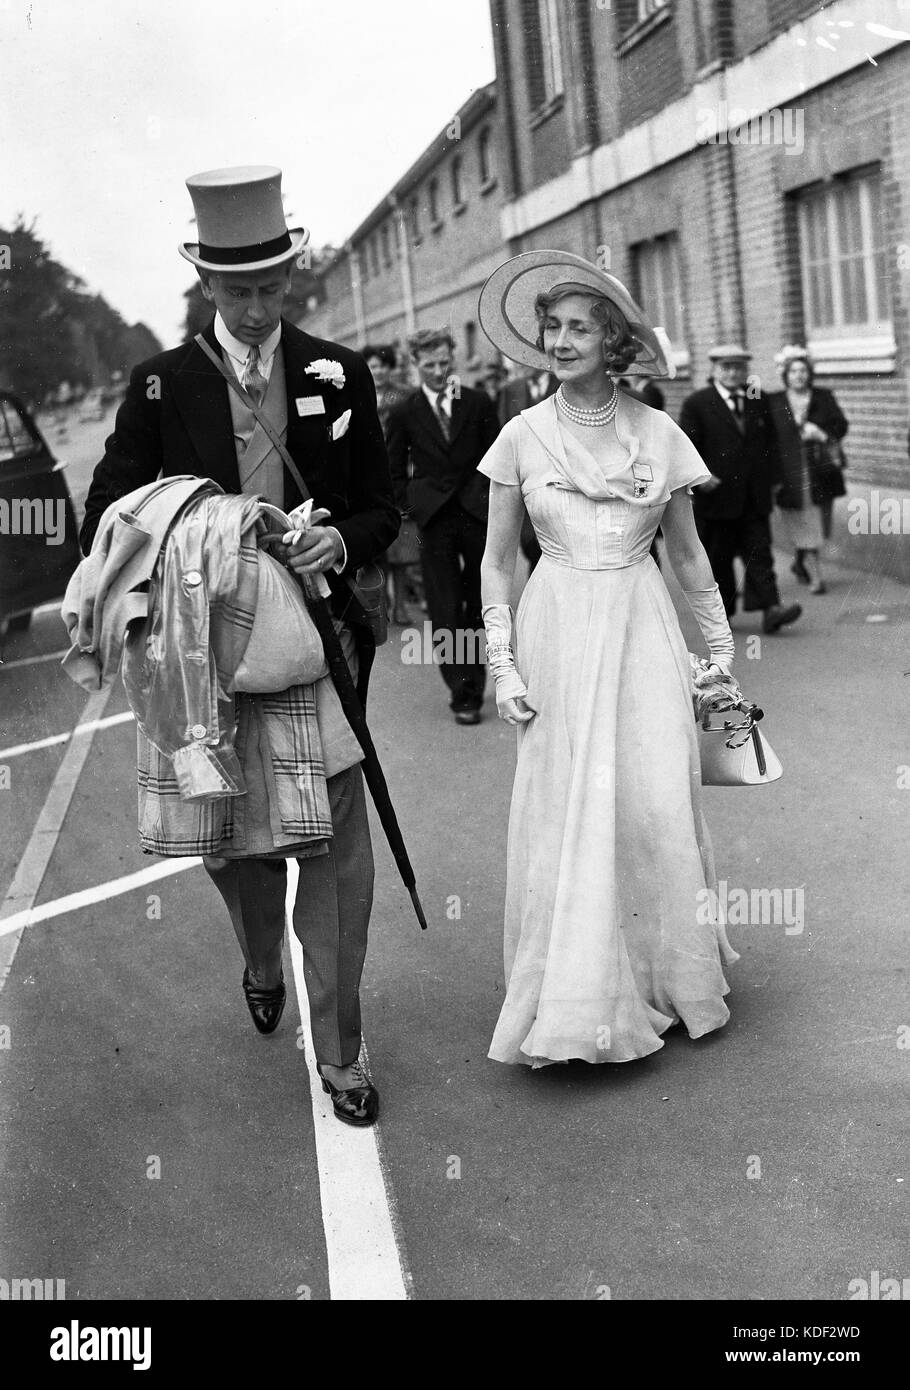 Lady Anne Dalrymple-Champneys arriving at Royal Ascot races 1946 - Stock Image